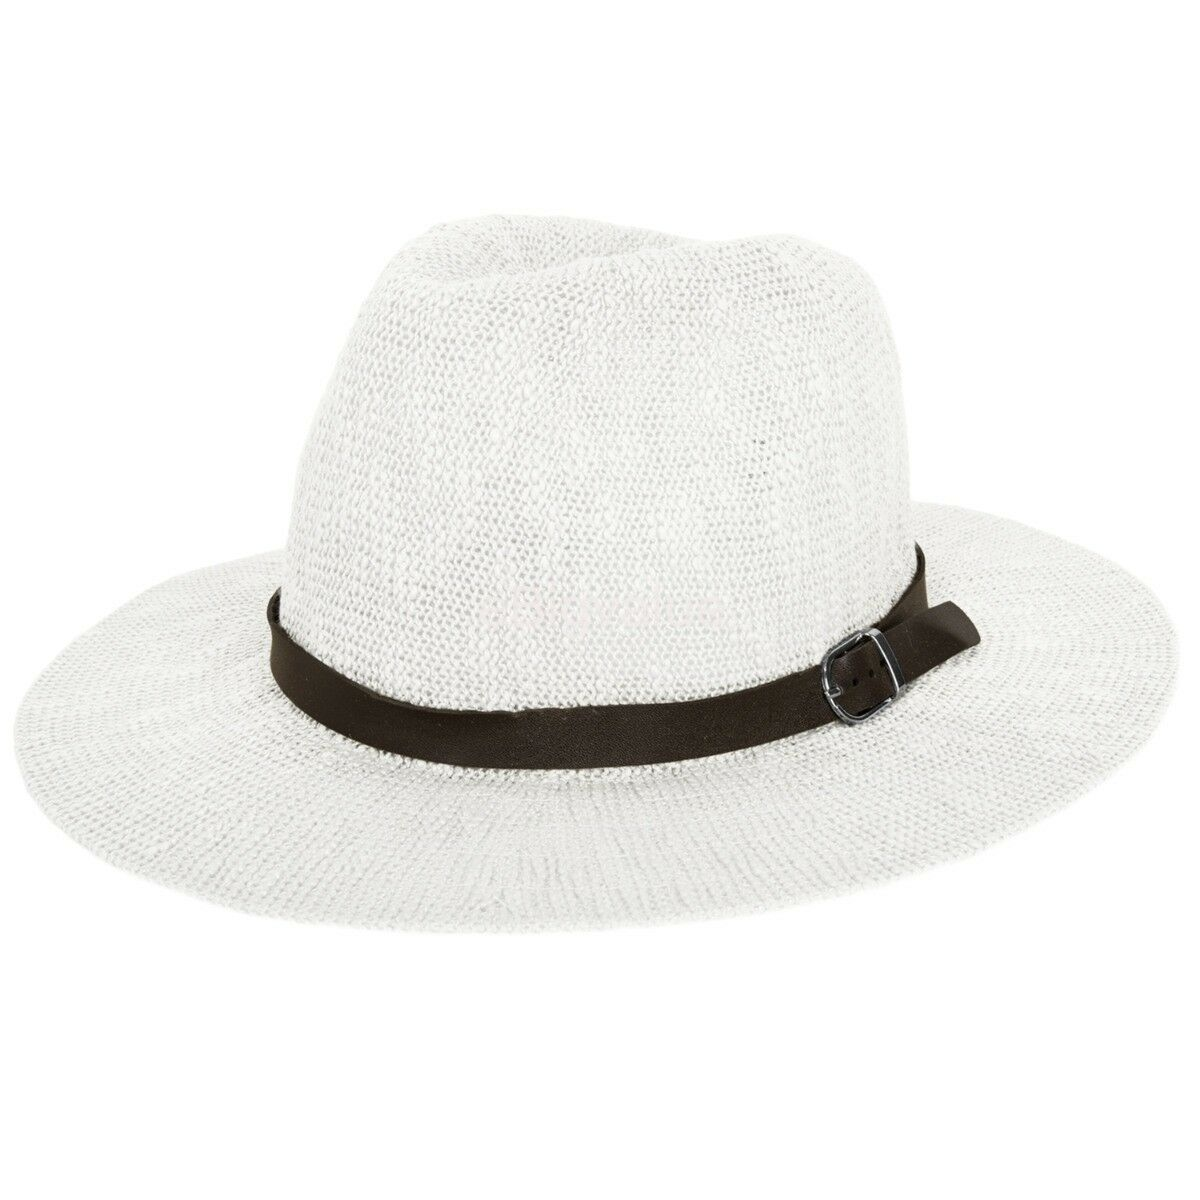 63e004cac Details about Aerusi Women Ladies White Wide Brim Fedora Floppy Summer  Beach Hat Sun Straw Cap